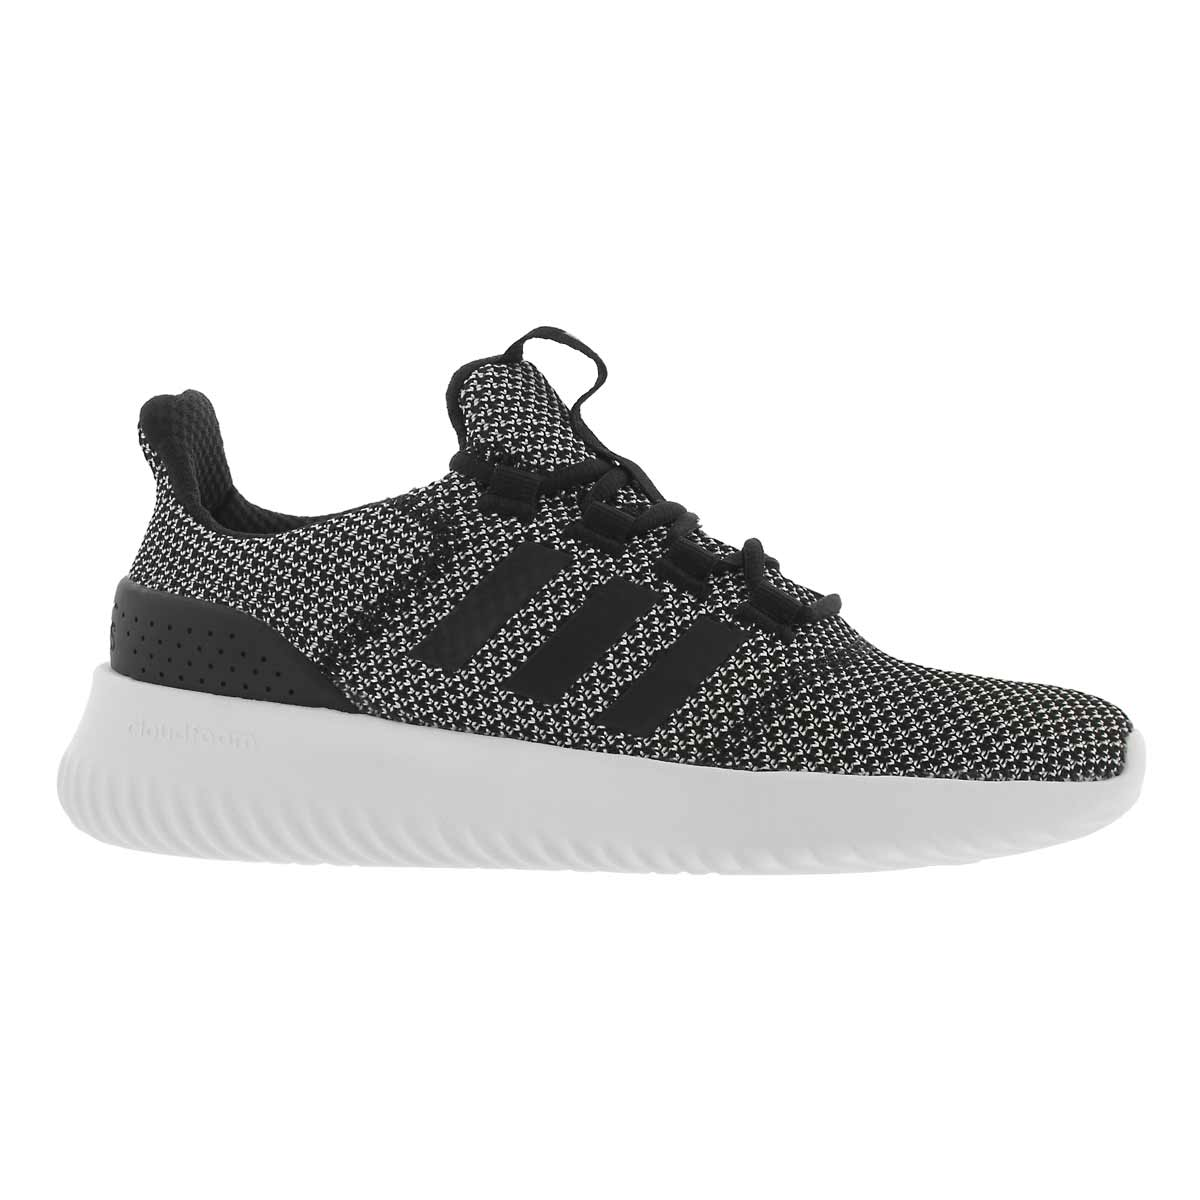 Lds Cloudfoam Ultimate blk running shoe